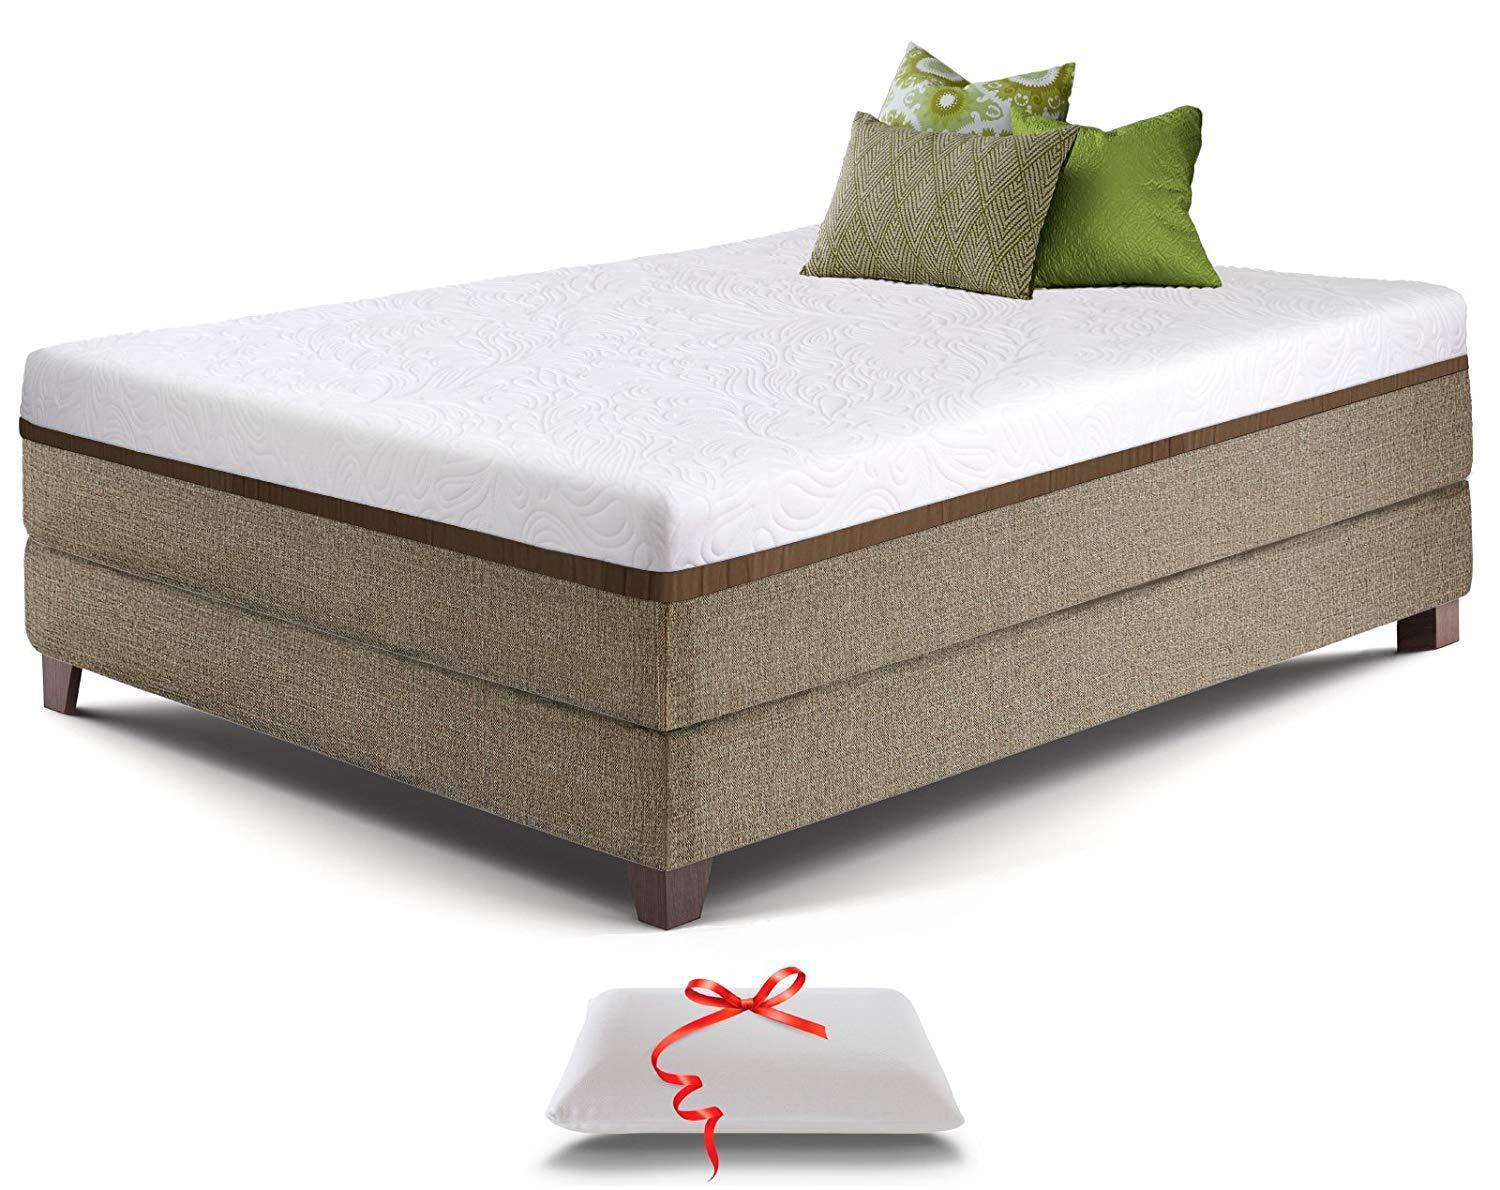 Cooling Gel Memory Foam Mattress 12 Inch King Size With Premium